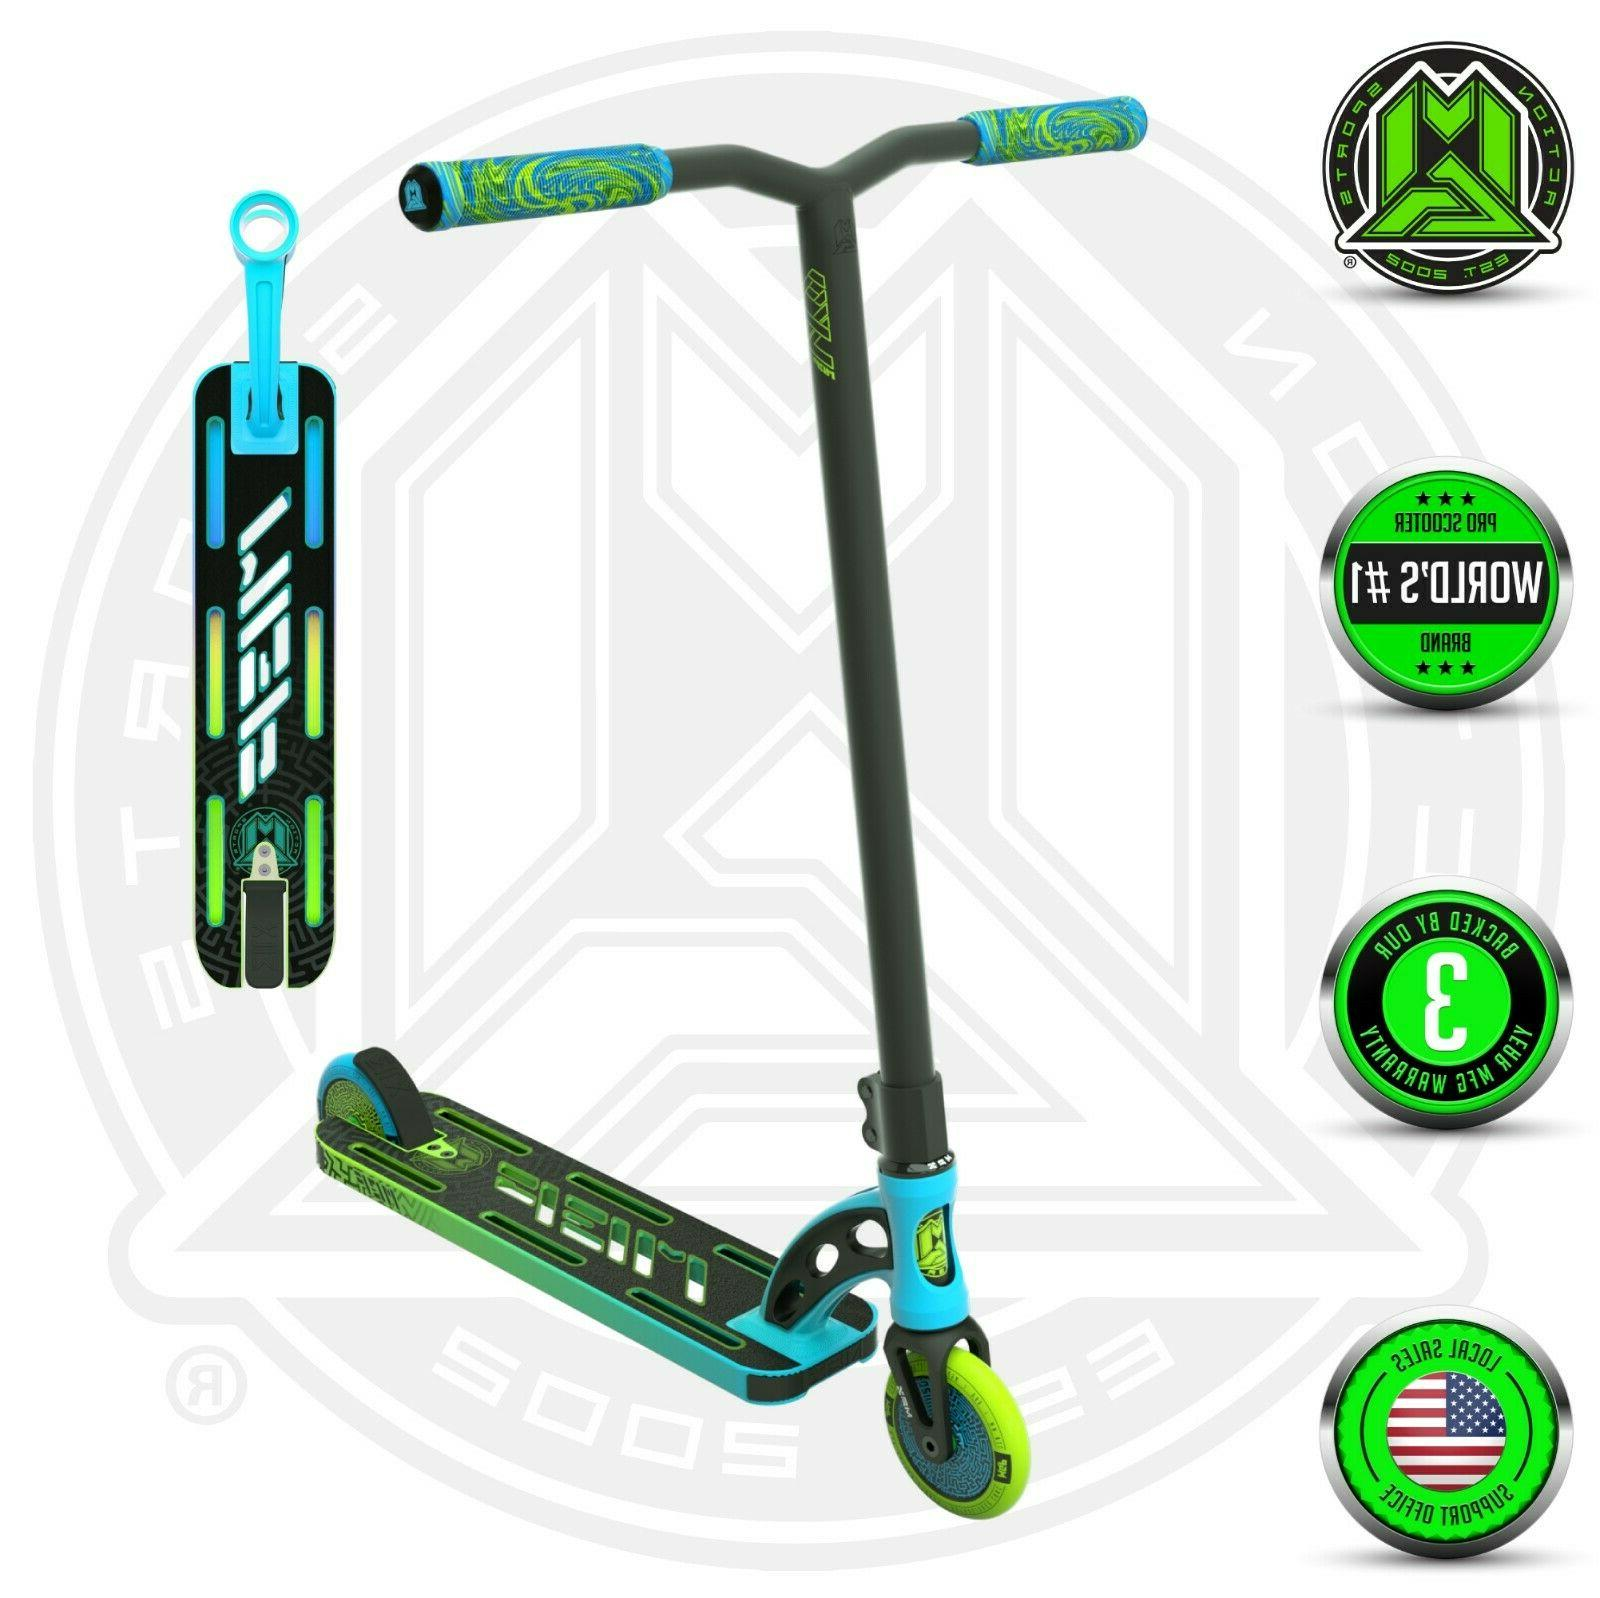 vx9 pro complete stunt scooter blue